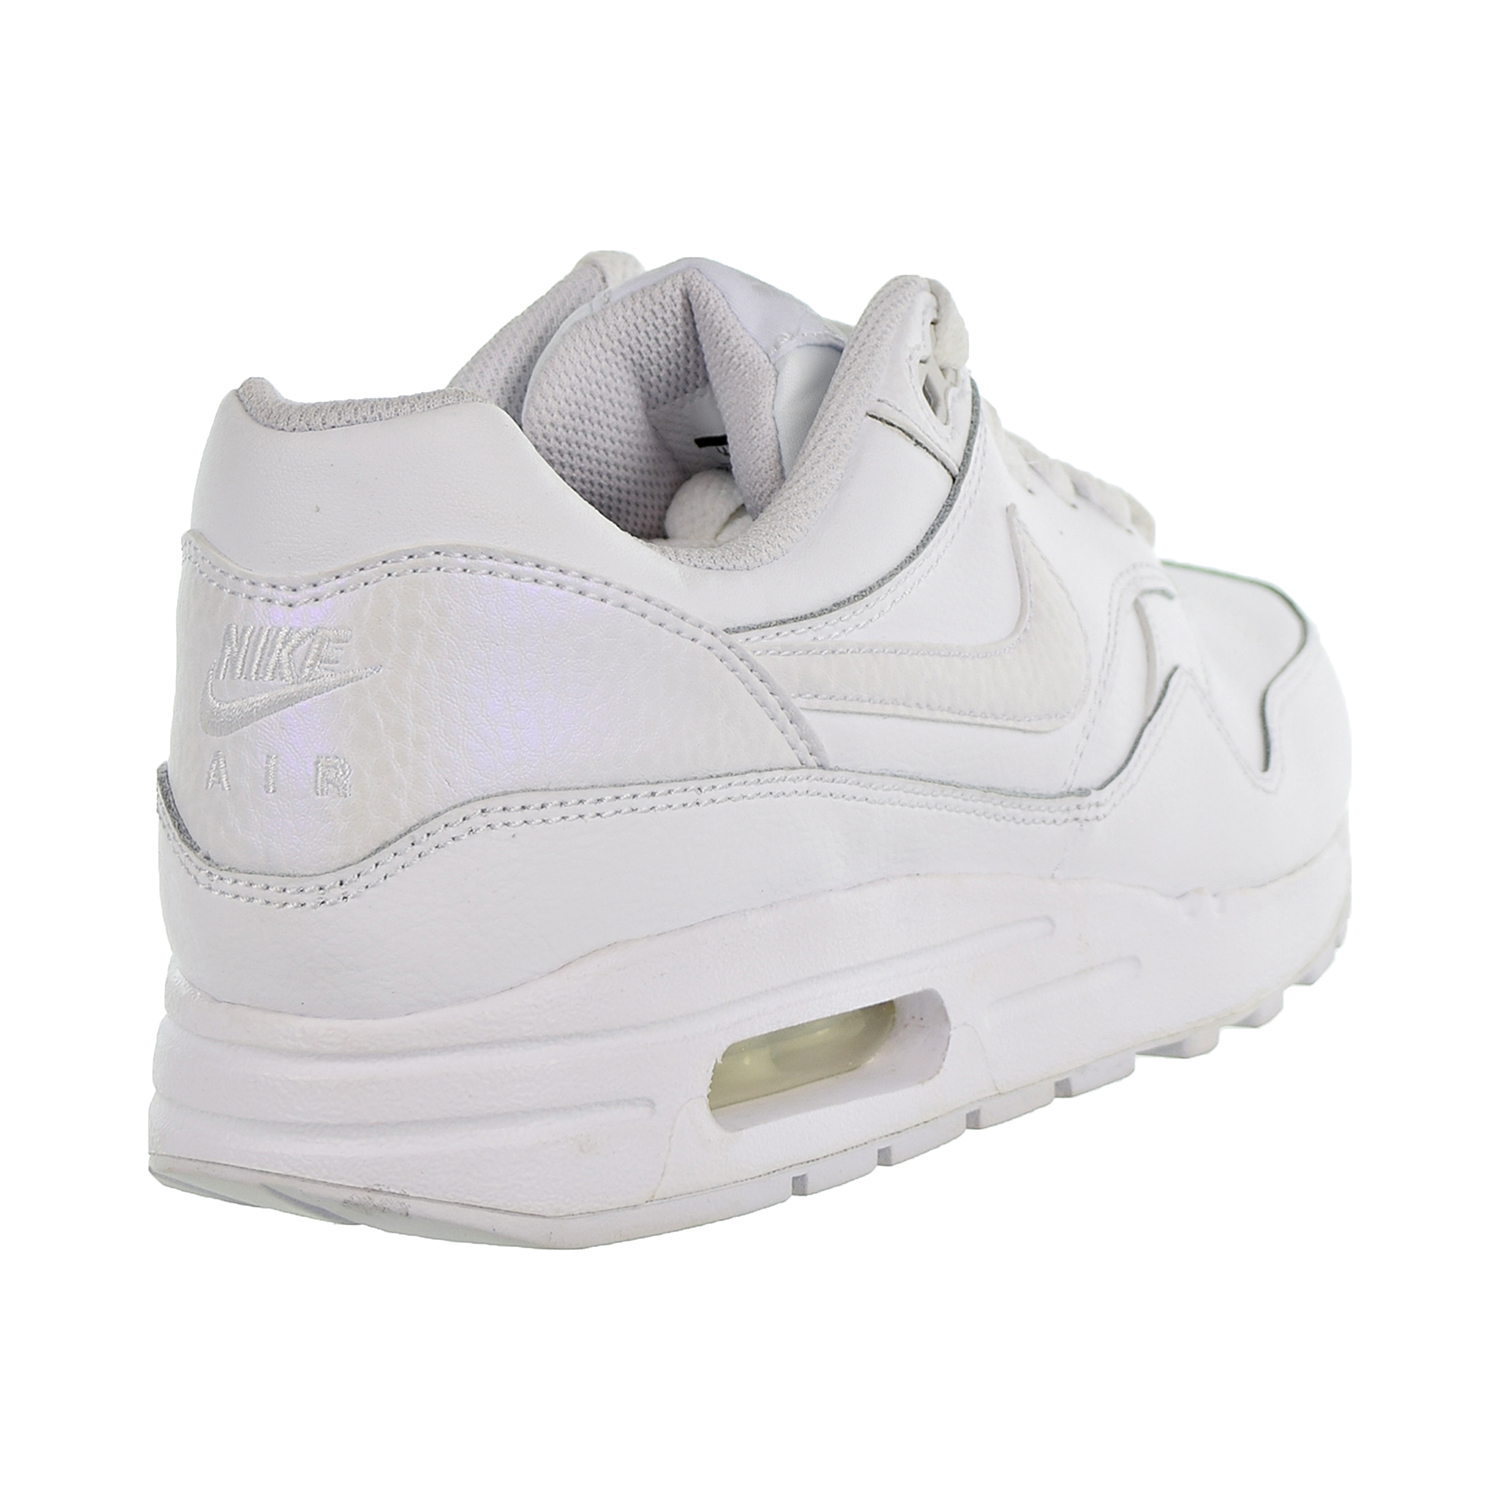 Details about Nike Air Max 1 Big Kids' Shoes White Vast Grey 807605 105